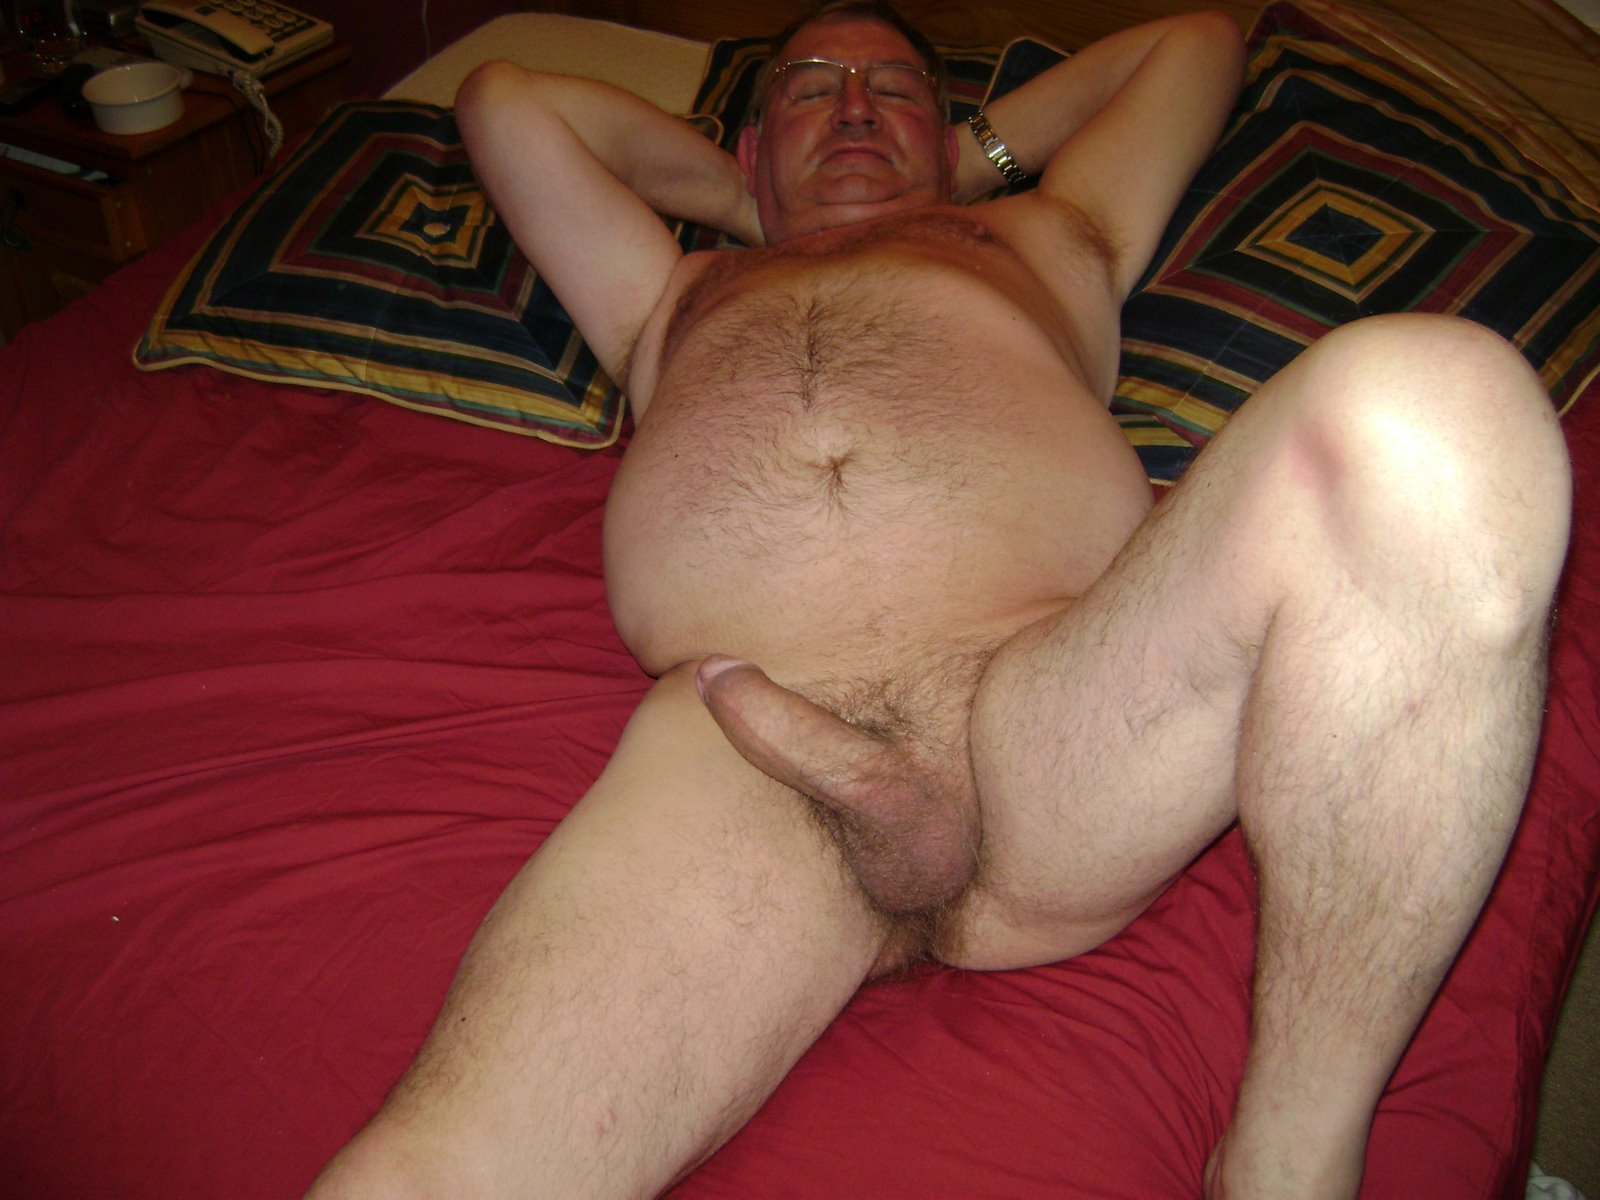 from Jayden fat gay pics